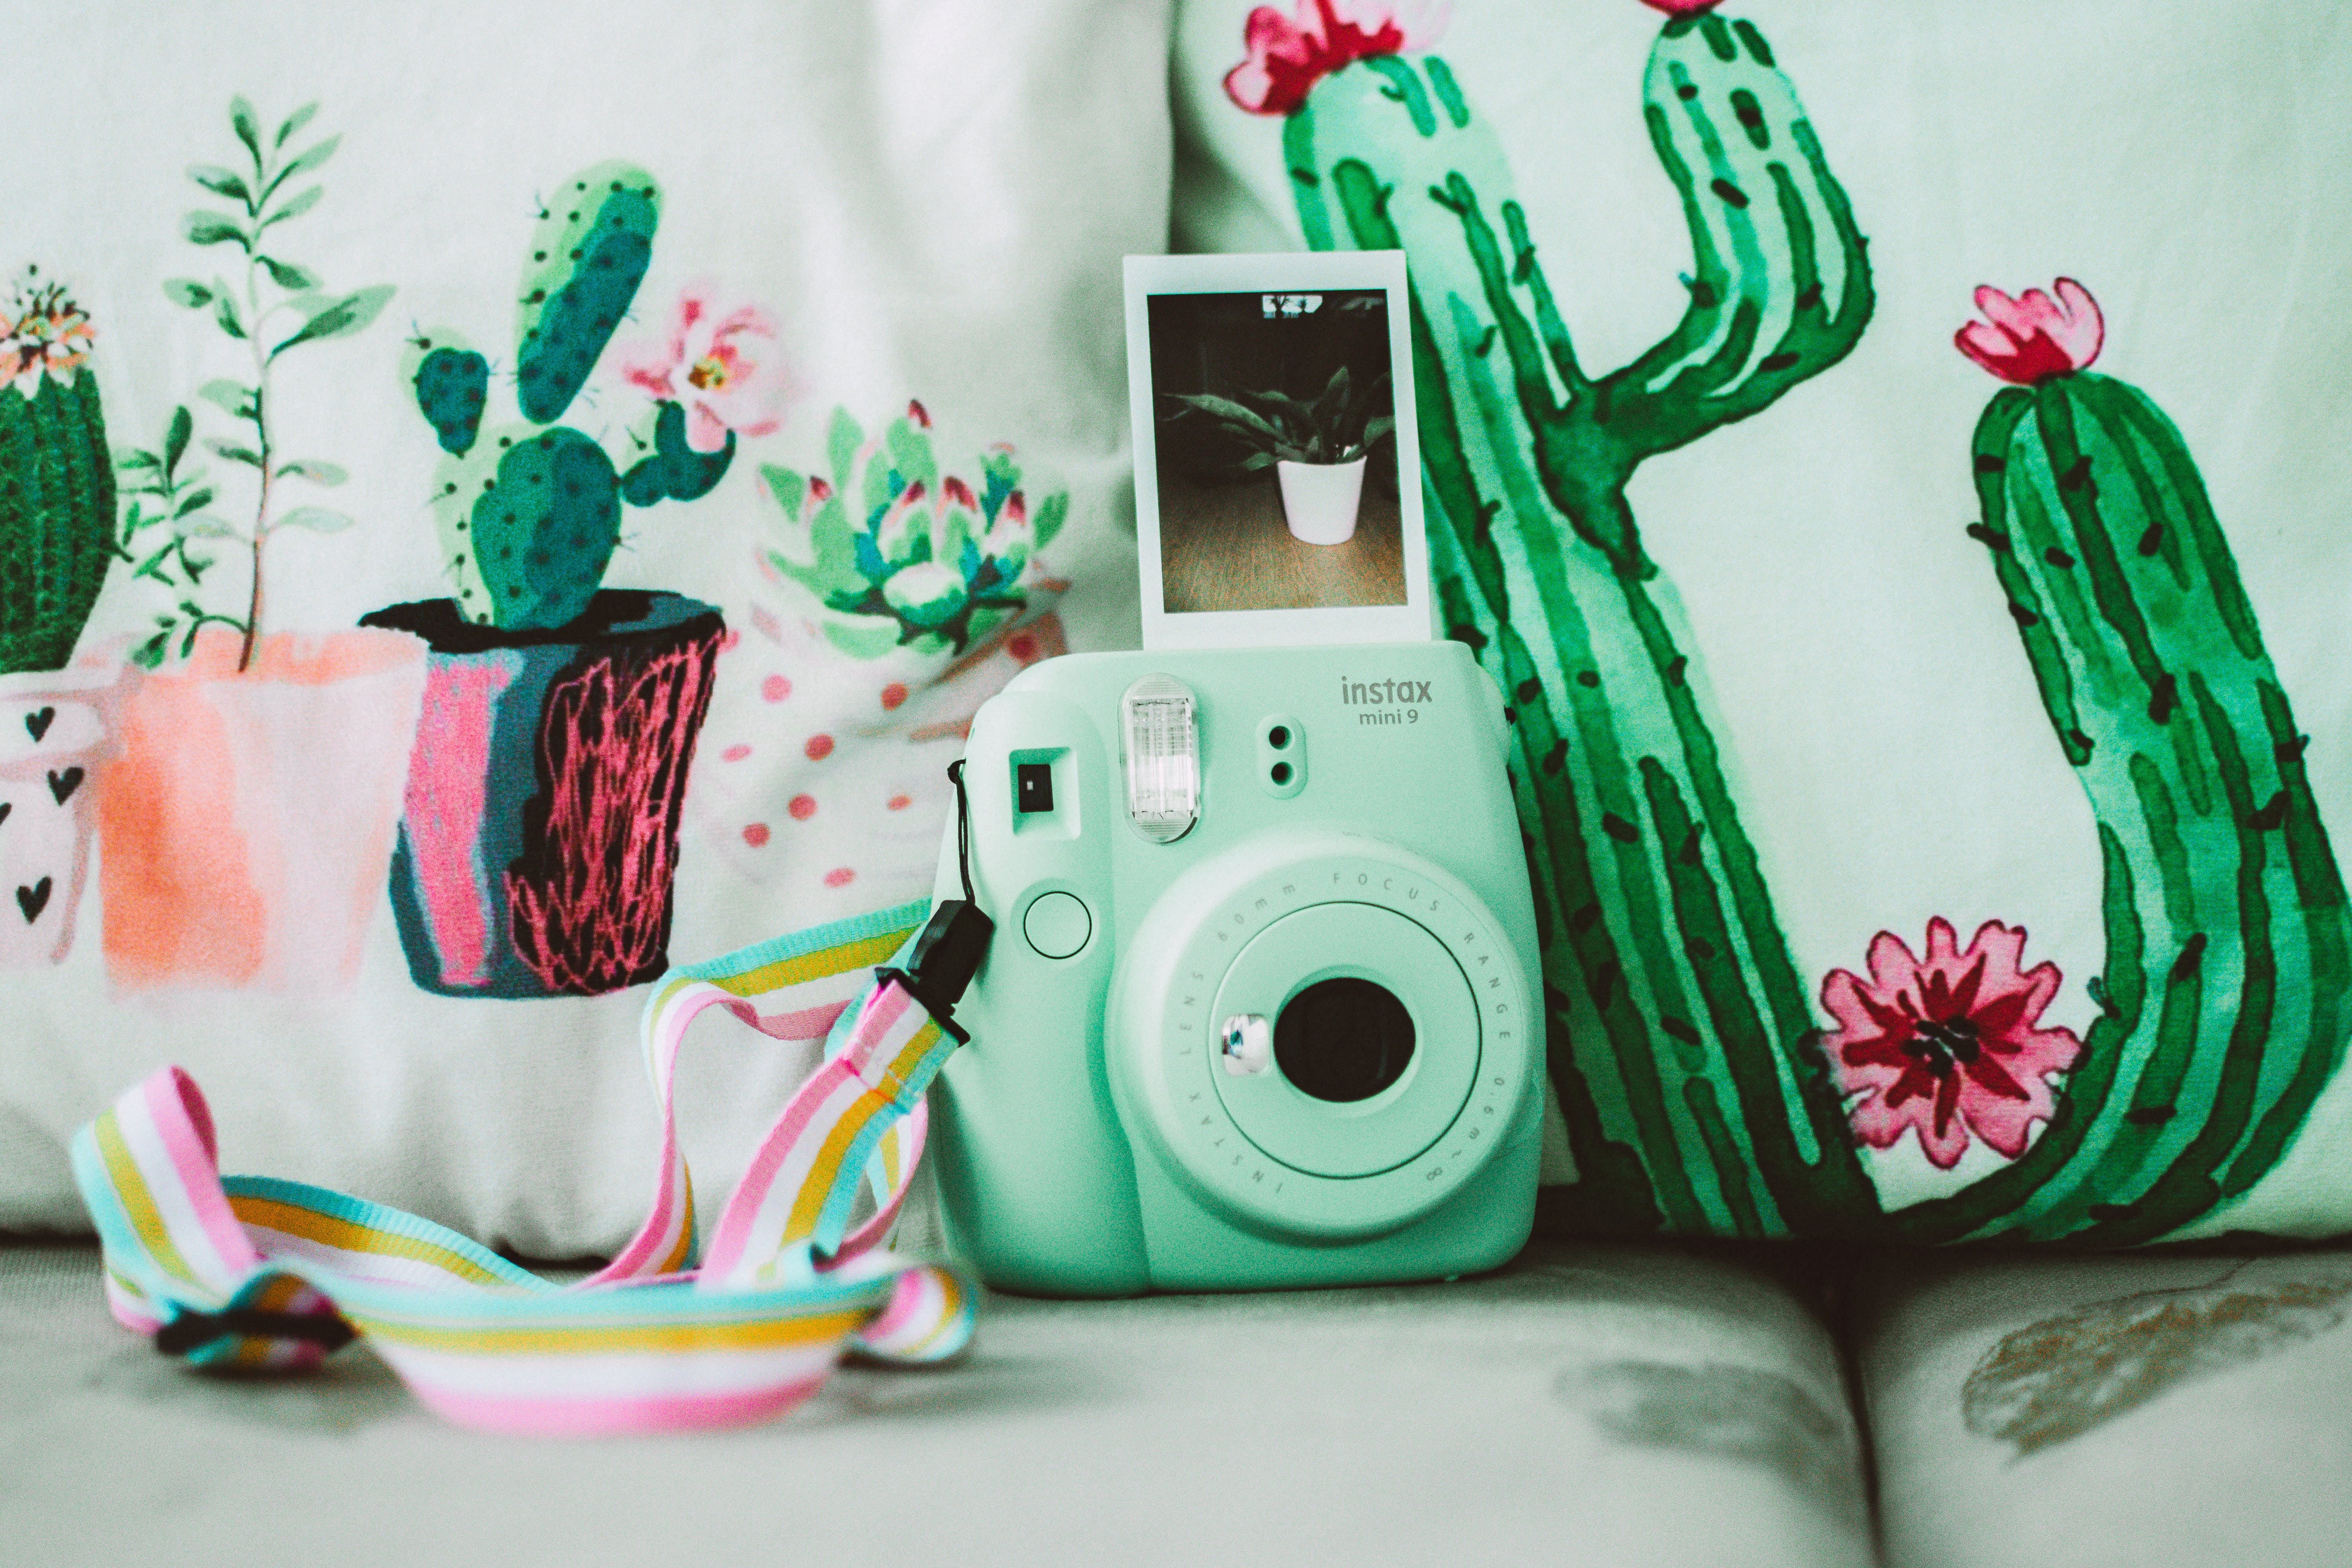 Green Instax Mini 8 Instant Camera Near Cactus Plant Printed Textiles